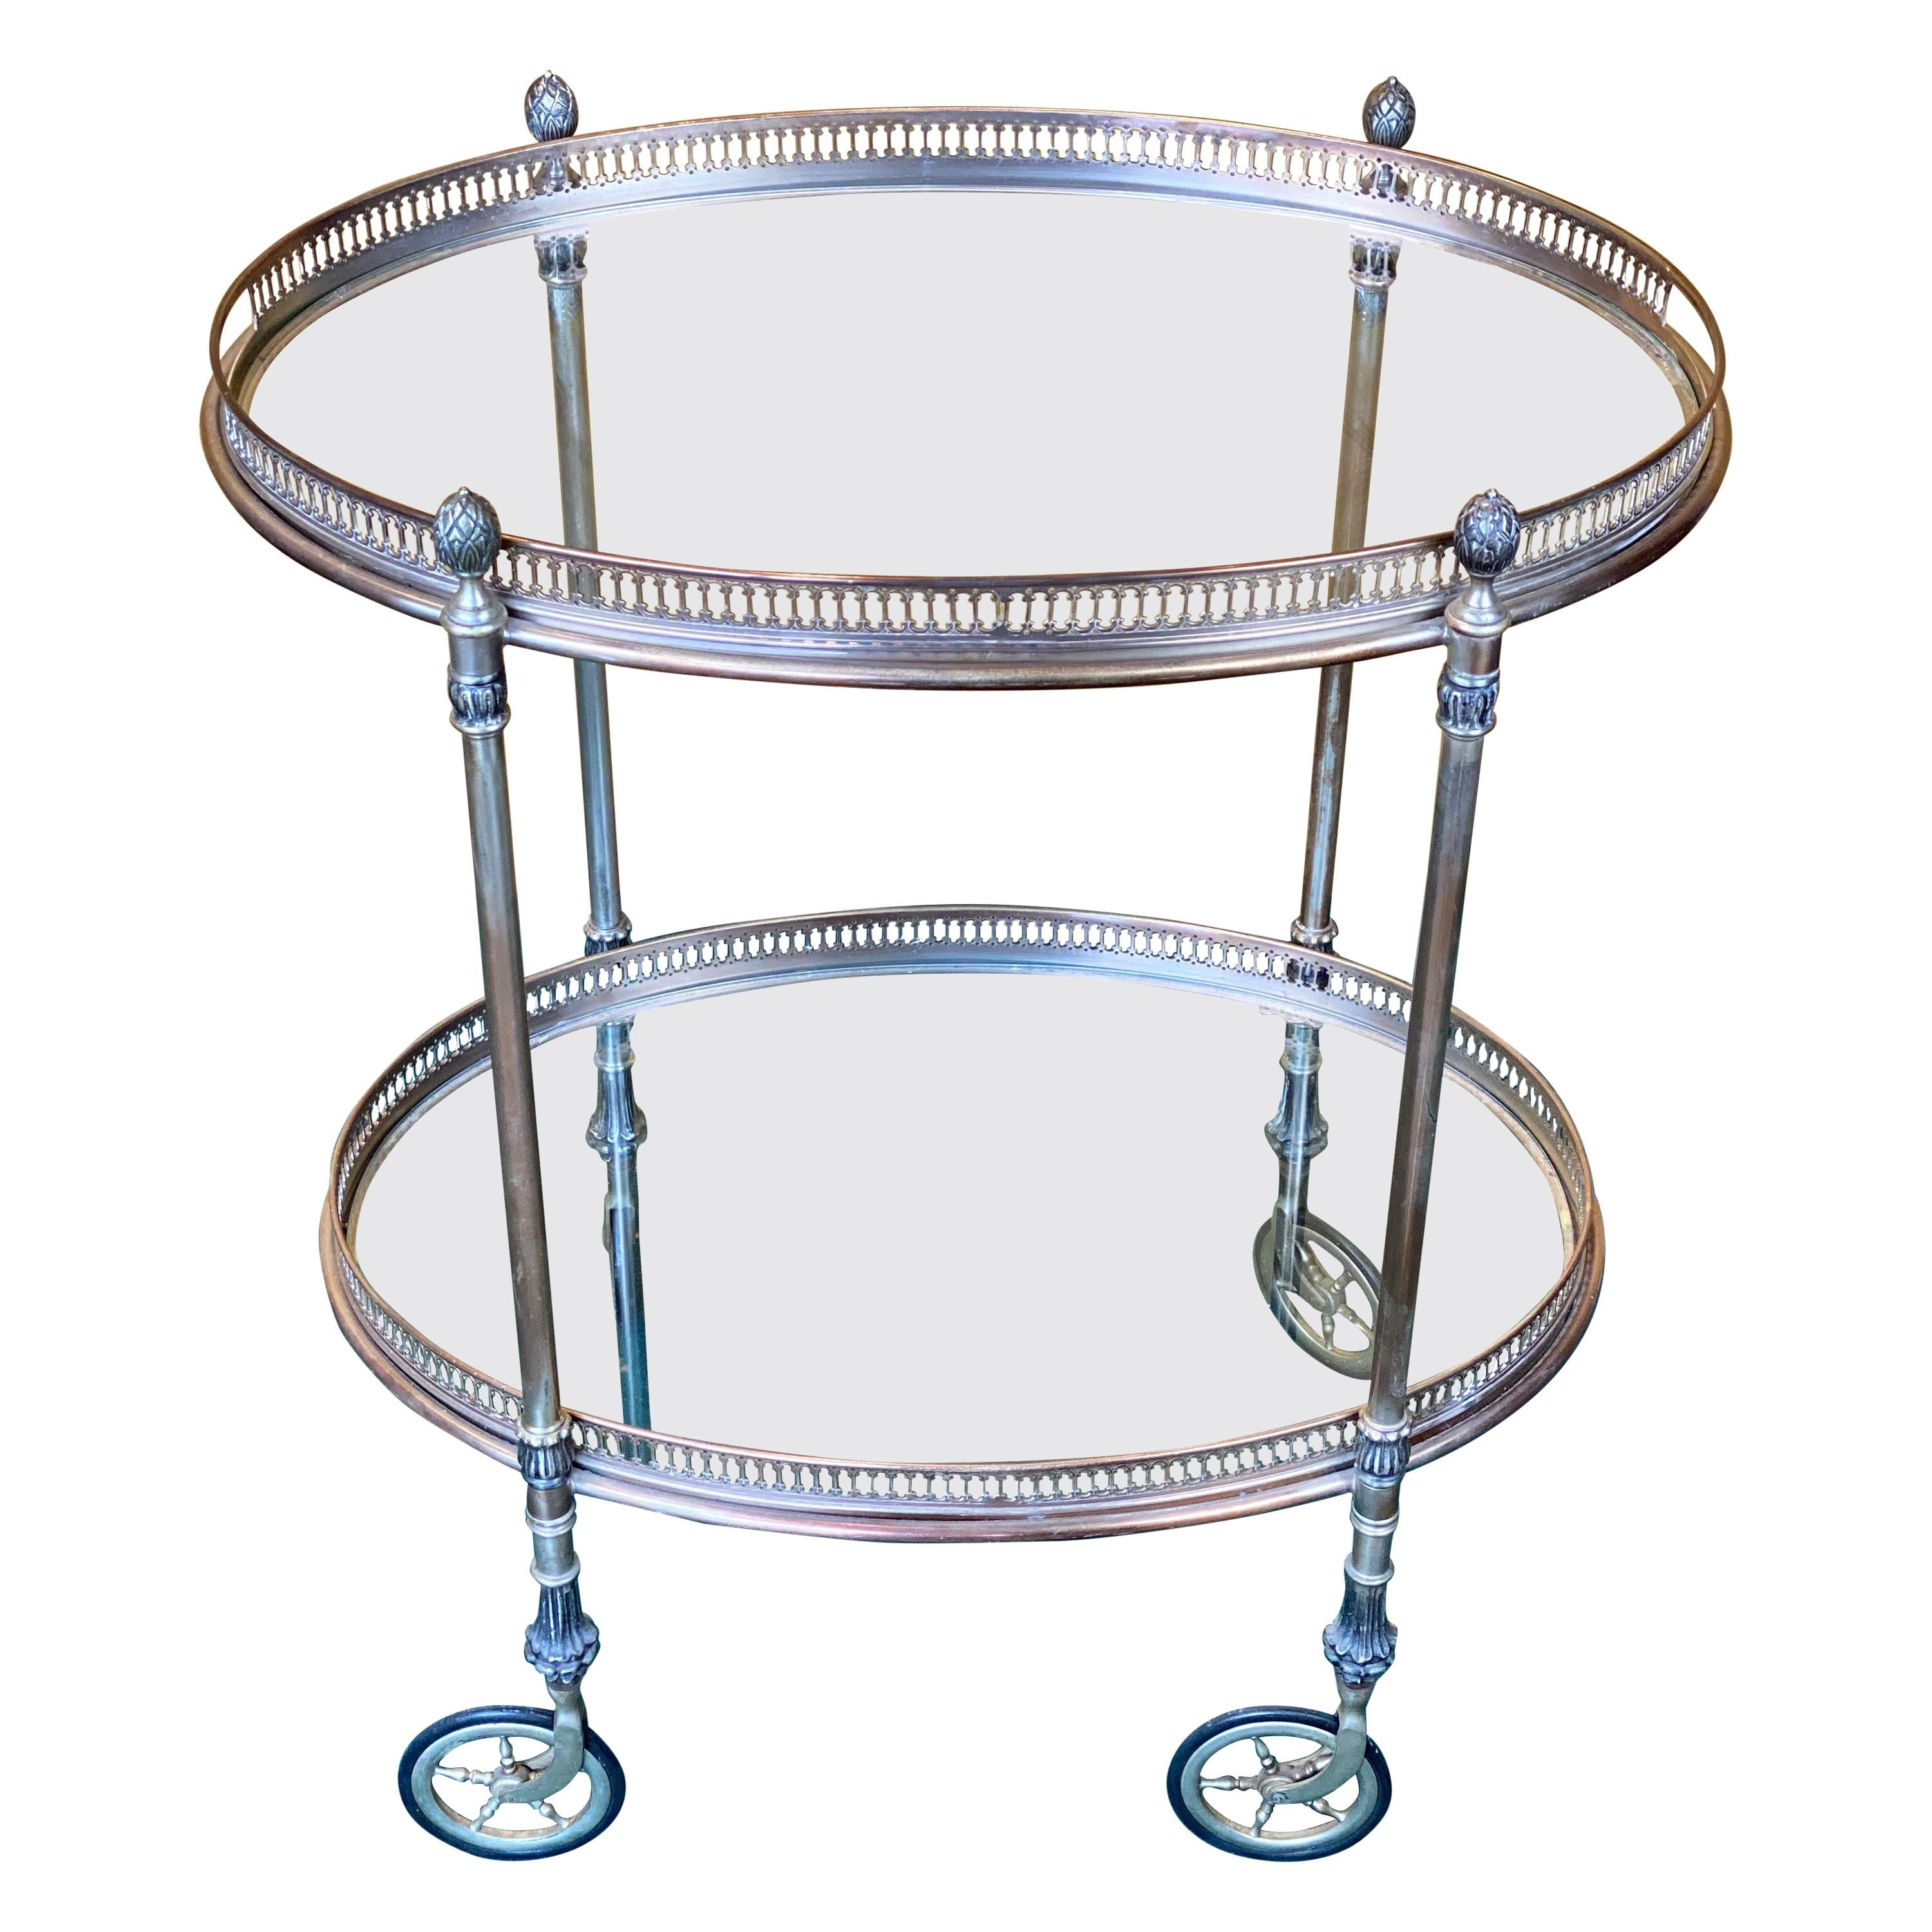 French Silver Metal Oval Bar Cart Trolley Attributed to Maison Baguès, 1950s